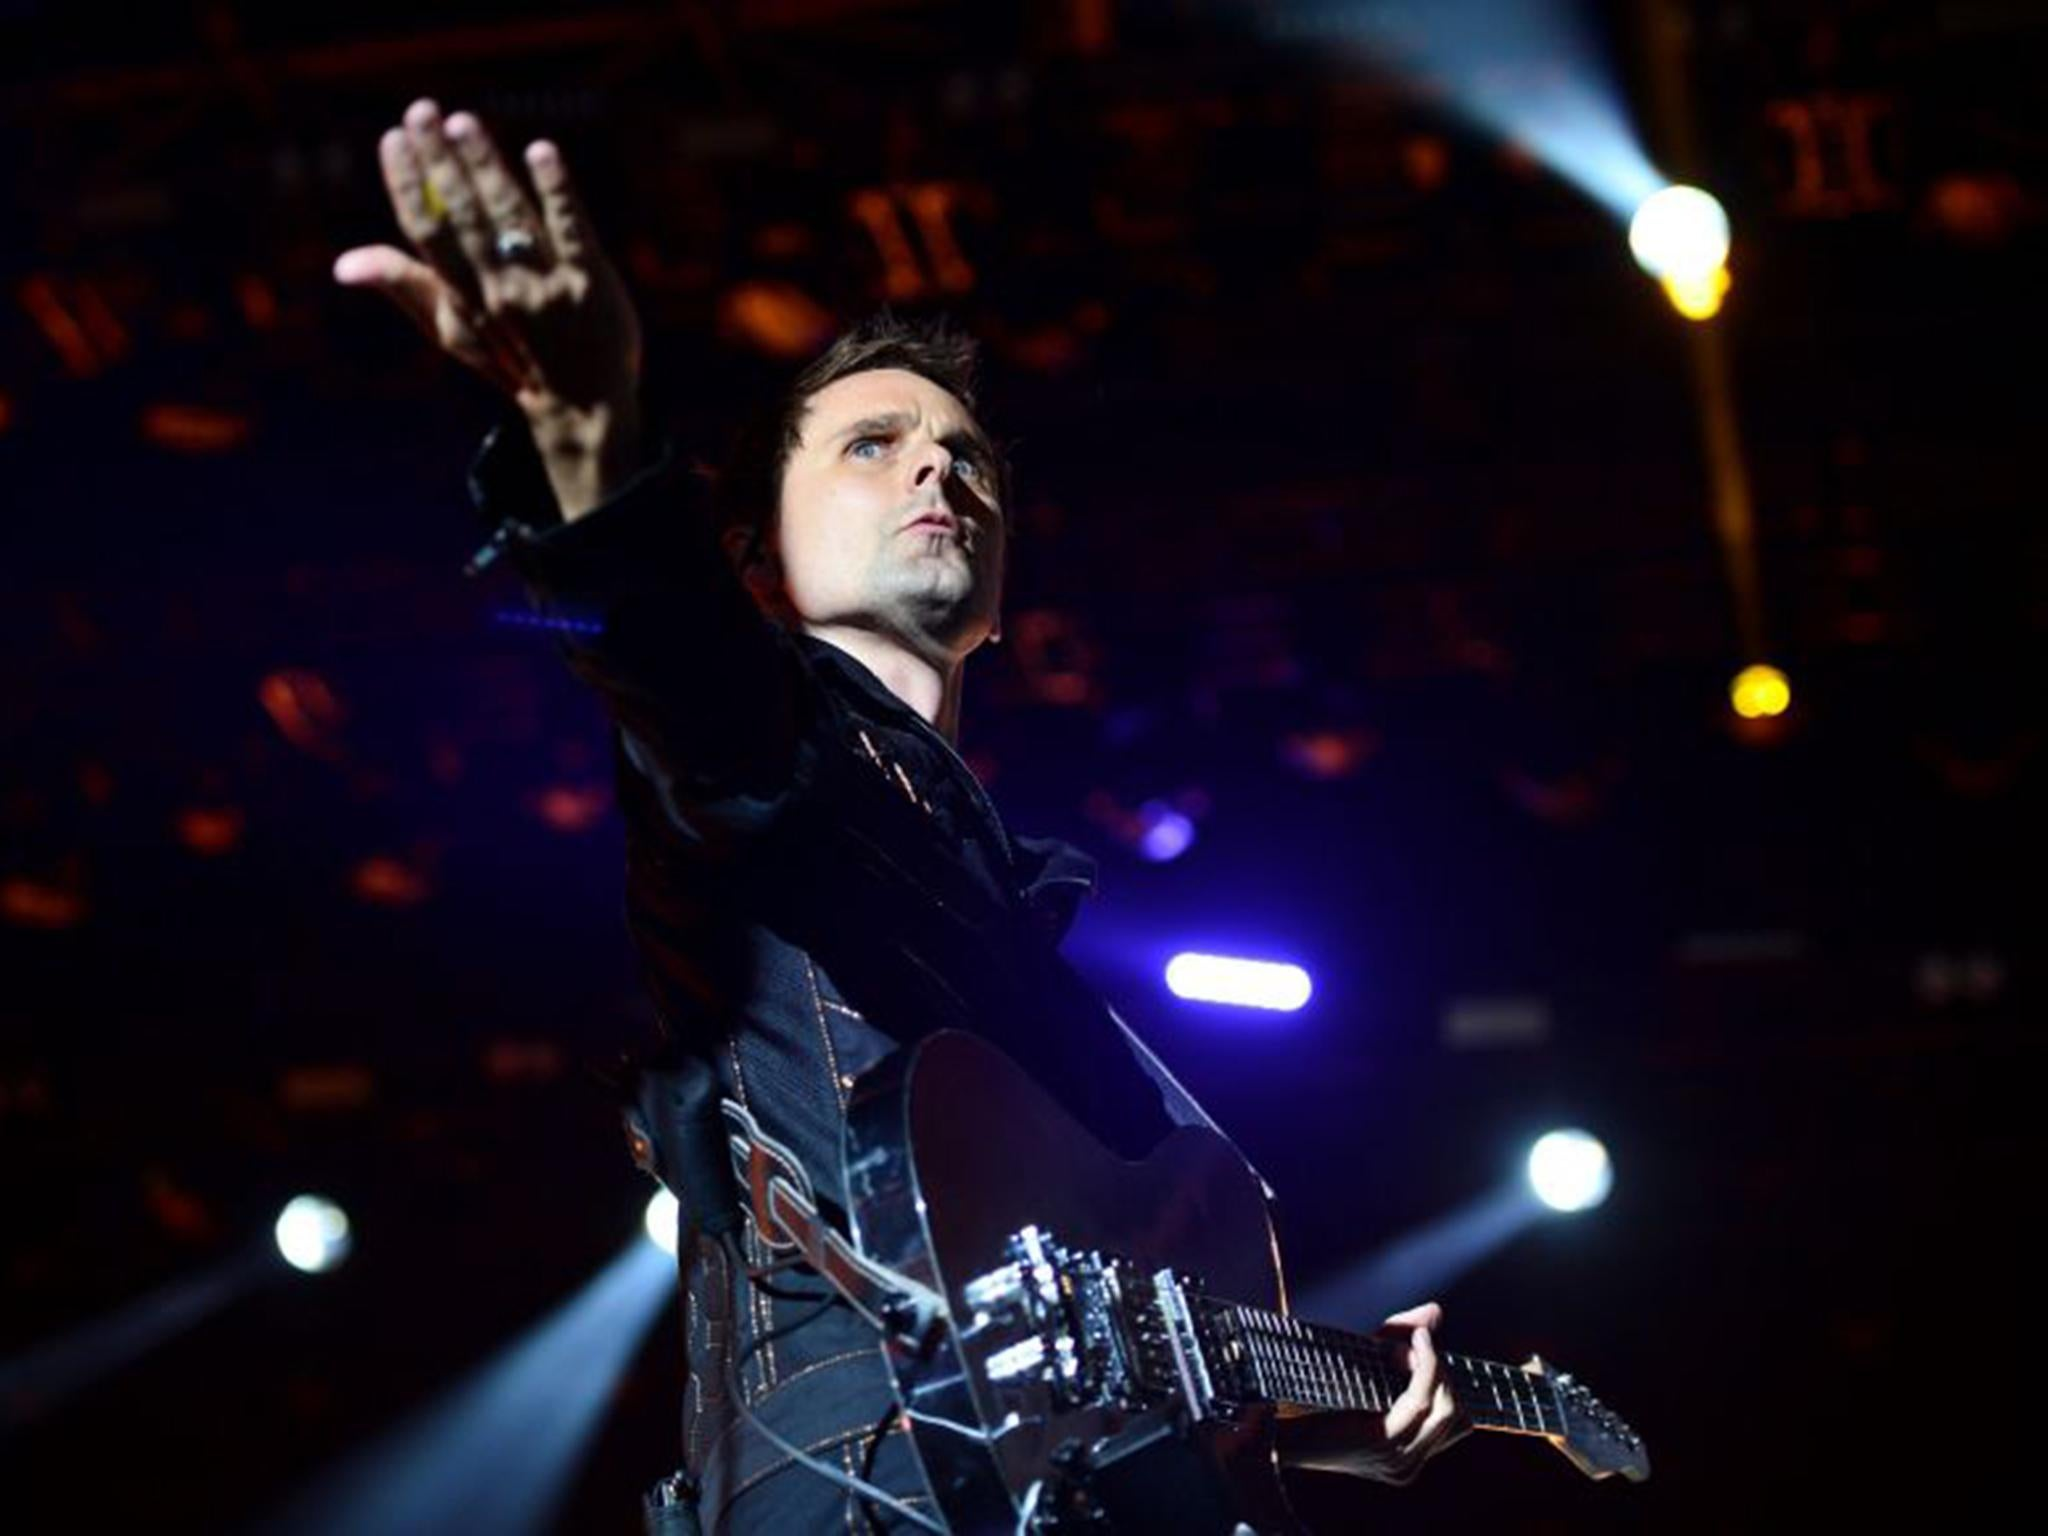 Muses Matt Bellamy Theres A Time Lag With Fans Where Five Years